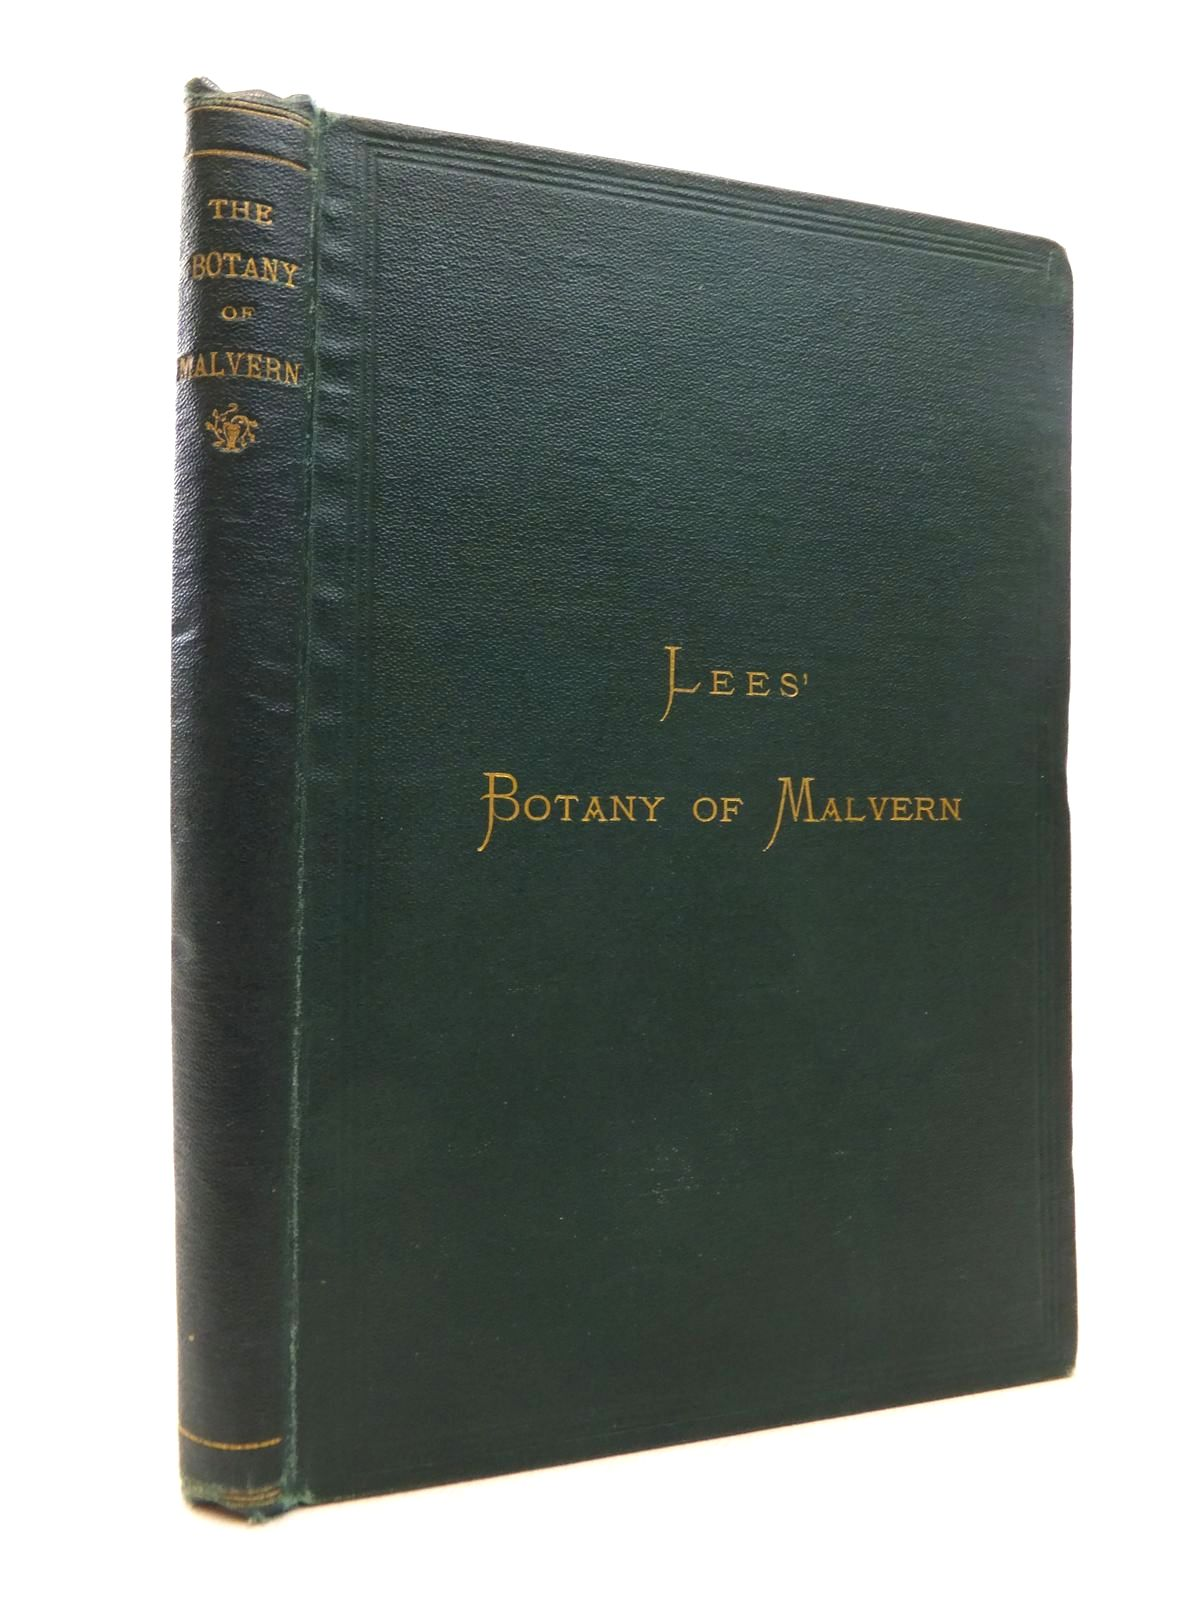 Photo of THE BOTANY OF THE MALVERN HILLS IN THE COUNTIES OF WORCESTER, HEREFORD, AND GLOUCESTER